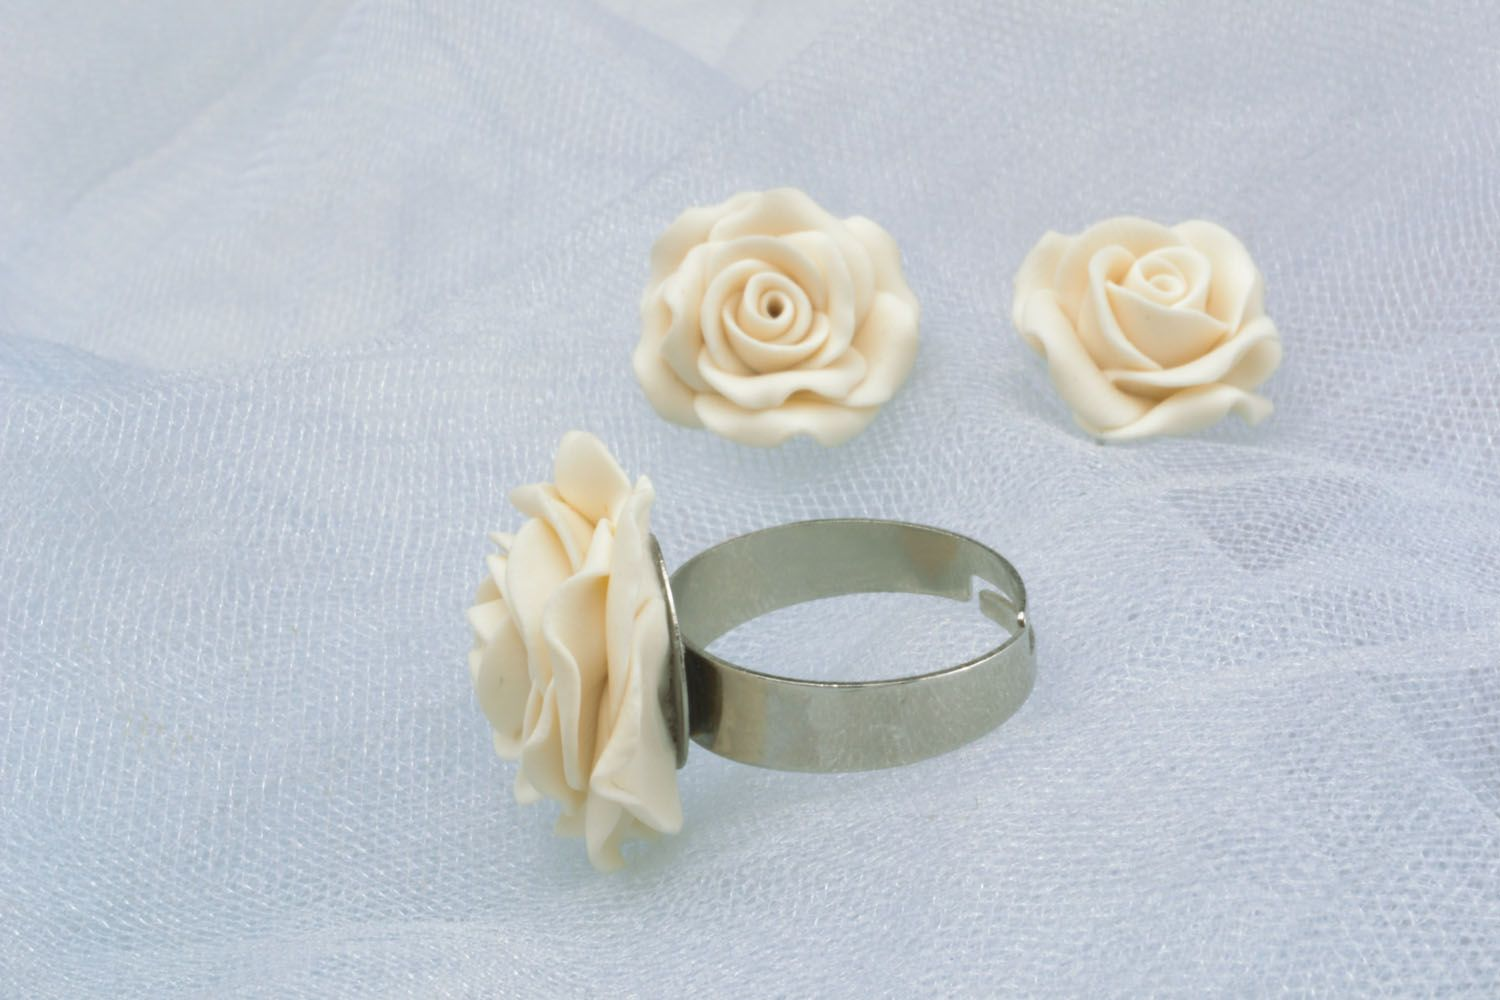 Plastic ring and earrings in the shape of white roses photo 1